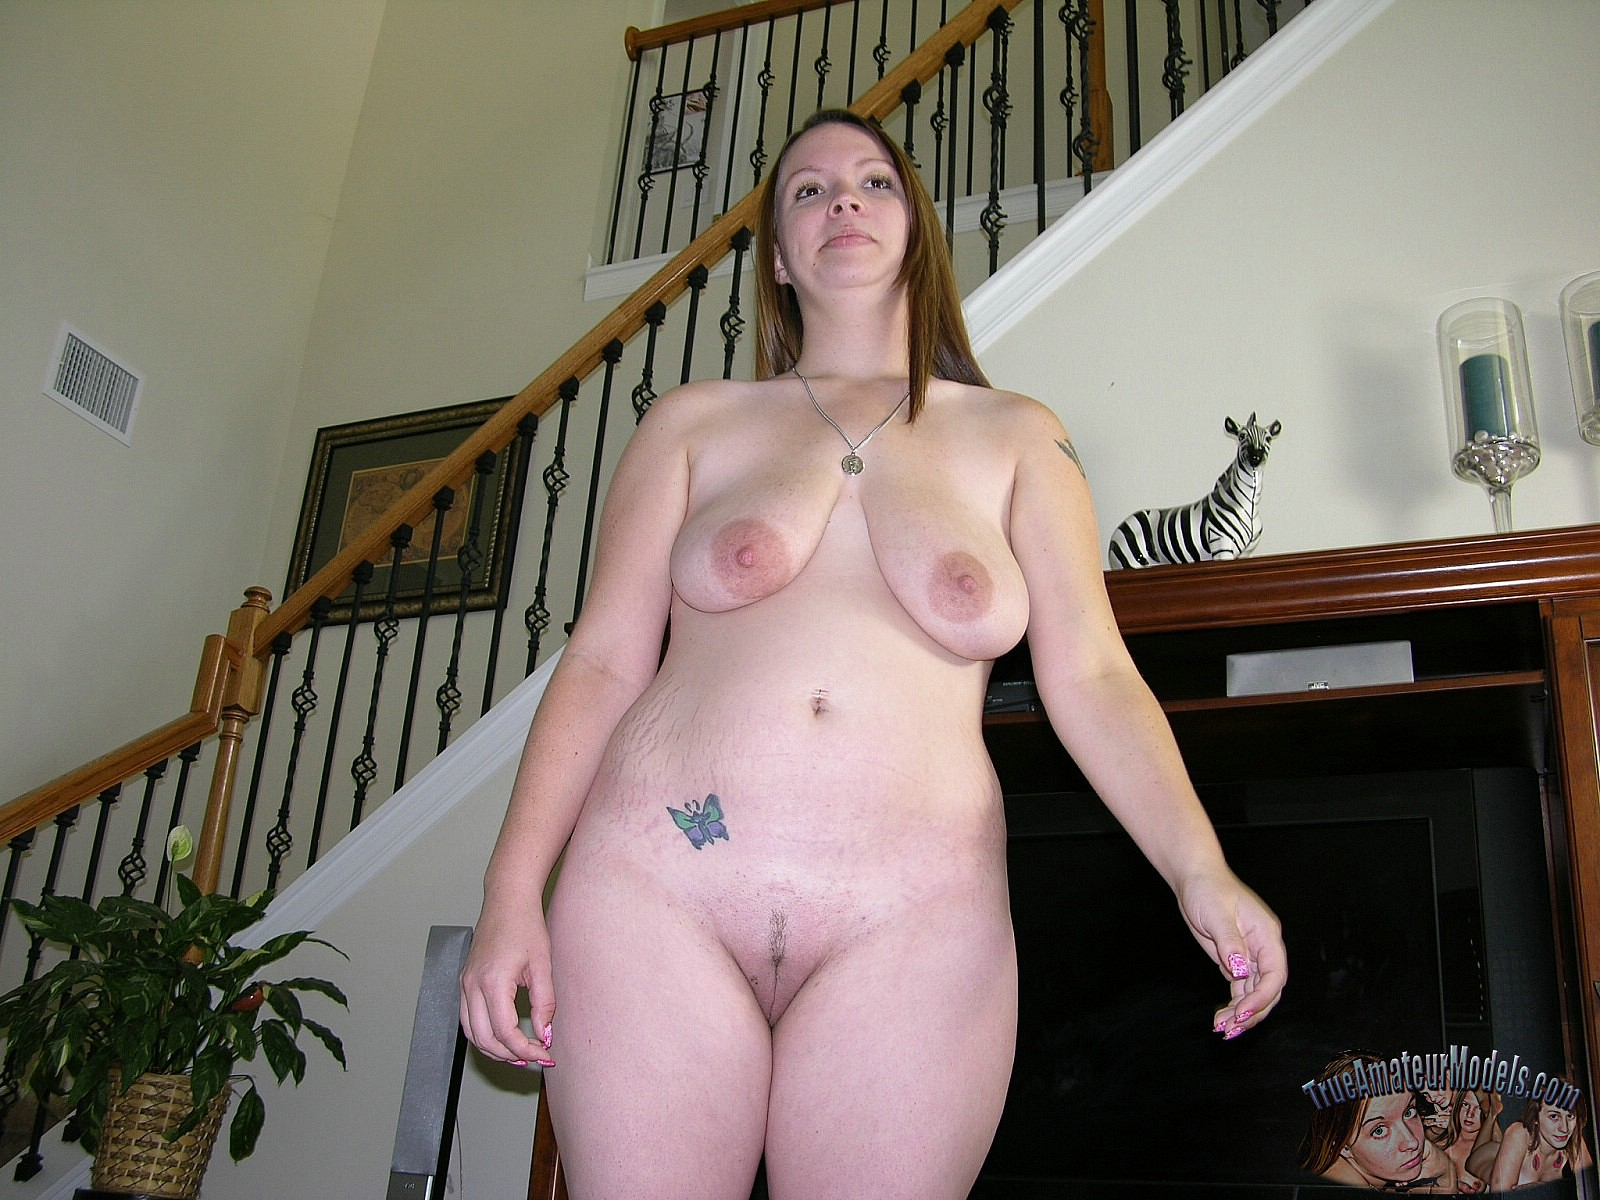 Real amateur chubby women really